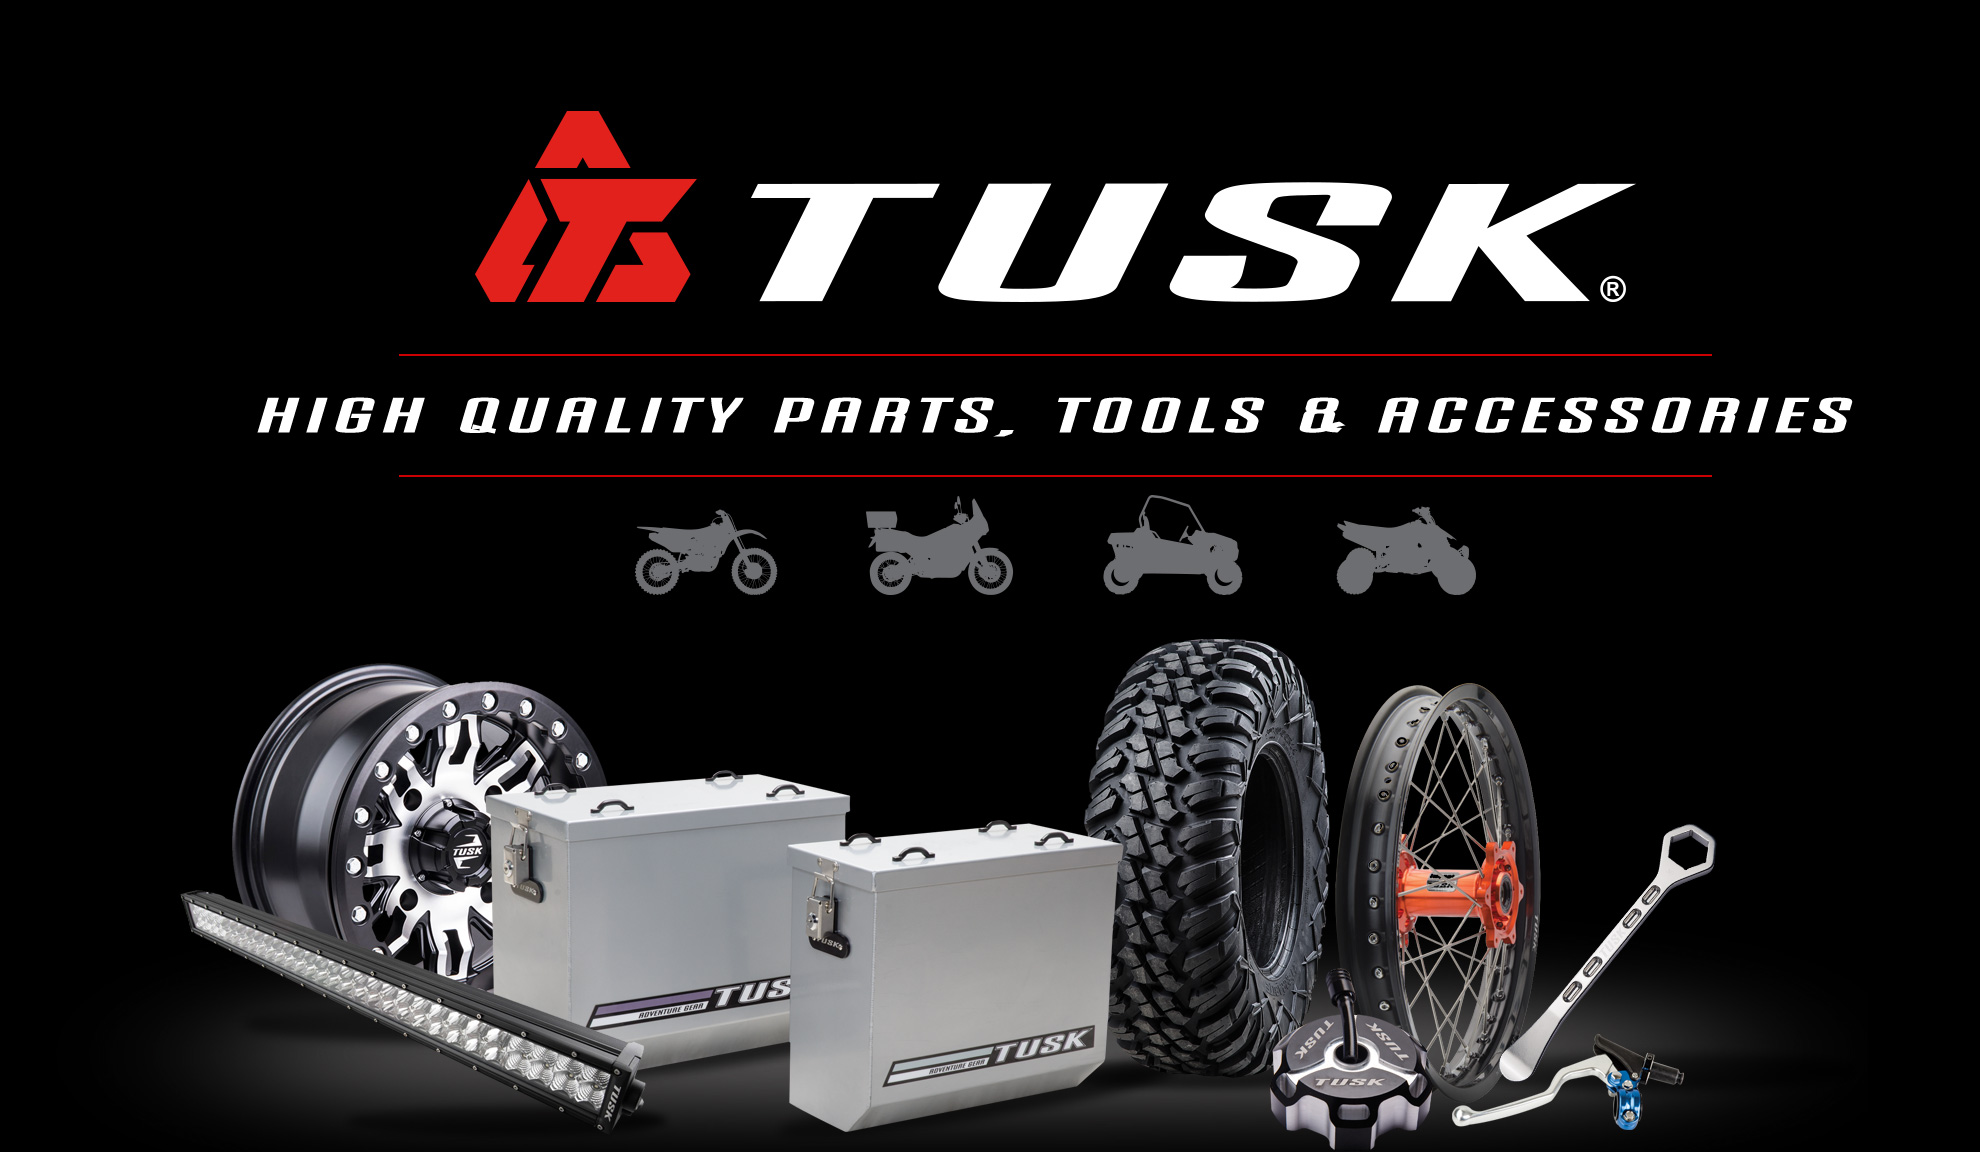 TUSK - Parts and accessories for dirt bikes, UTVs, SxS, ATVs